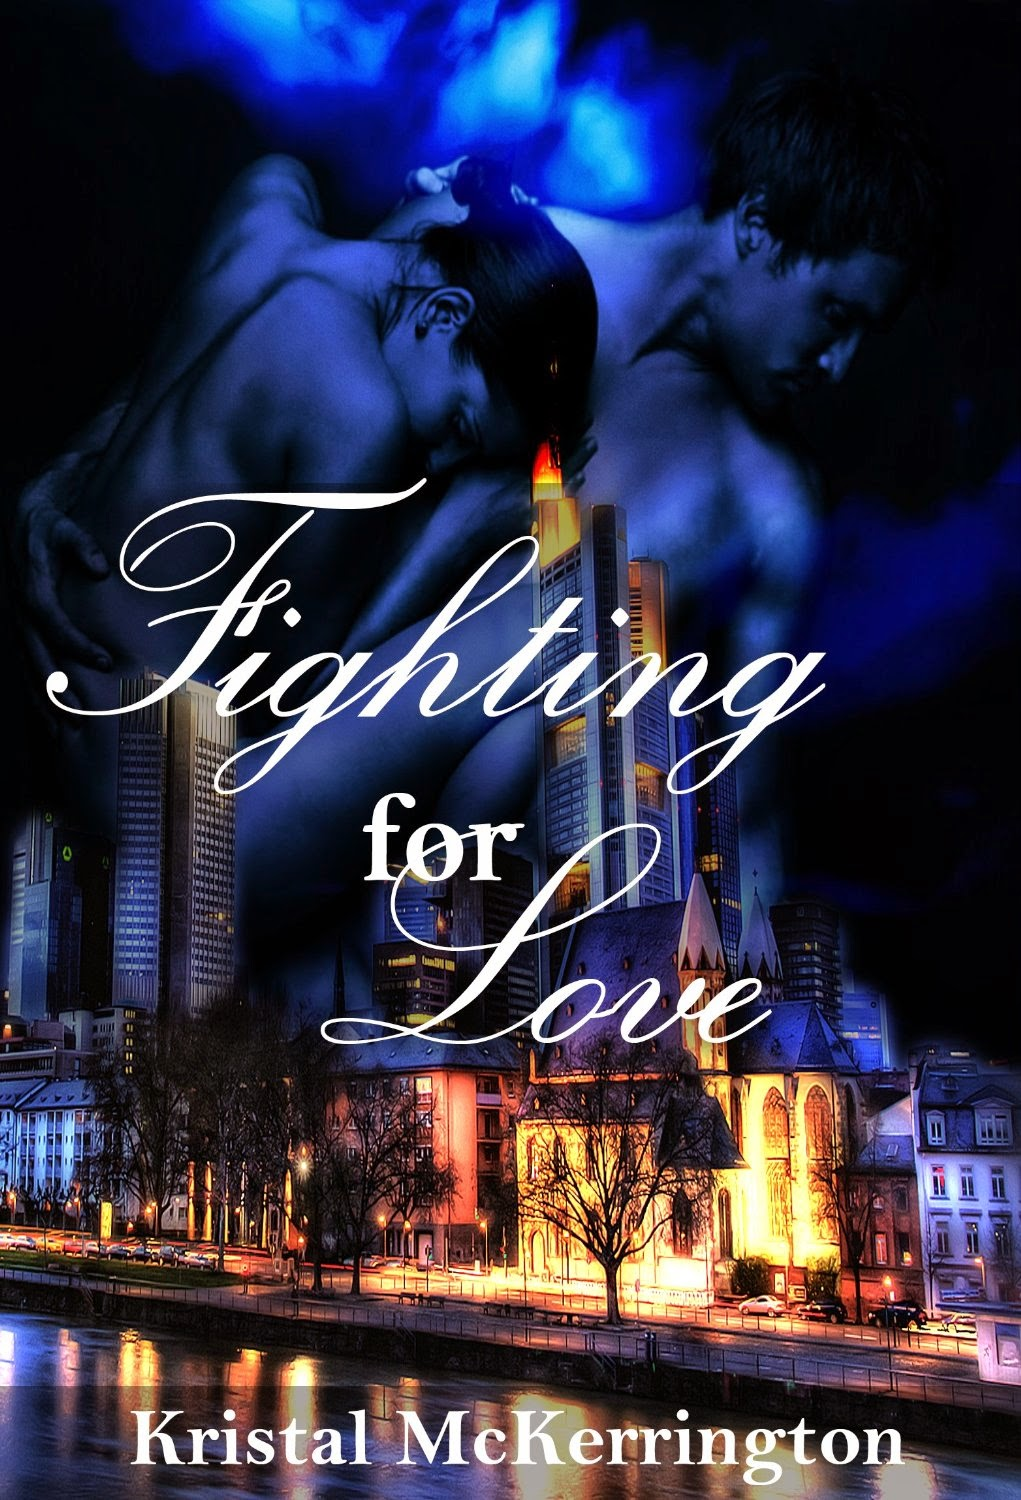 http://www.amazon.com/Fighting-Love-Kristal-McKerrington-ebook/dp/B00DU1R0V8/ref=sr_1_4?s=books&ie=UTF8&qid=1395790317&sr=1-4&keywords=kristal+mckerrington